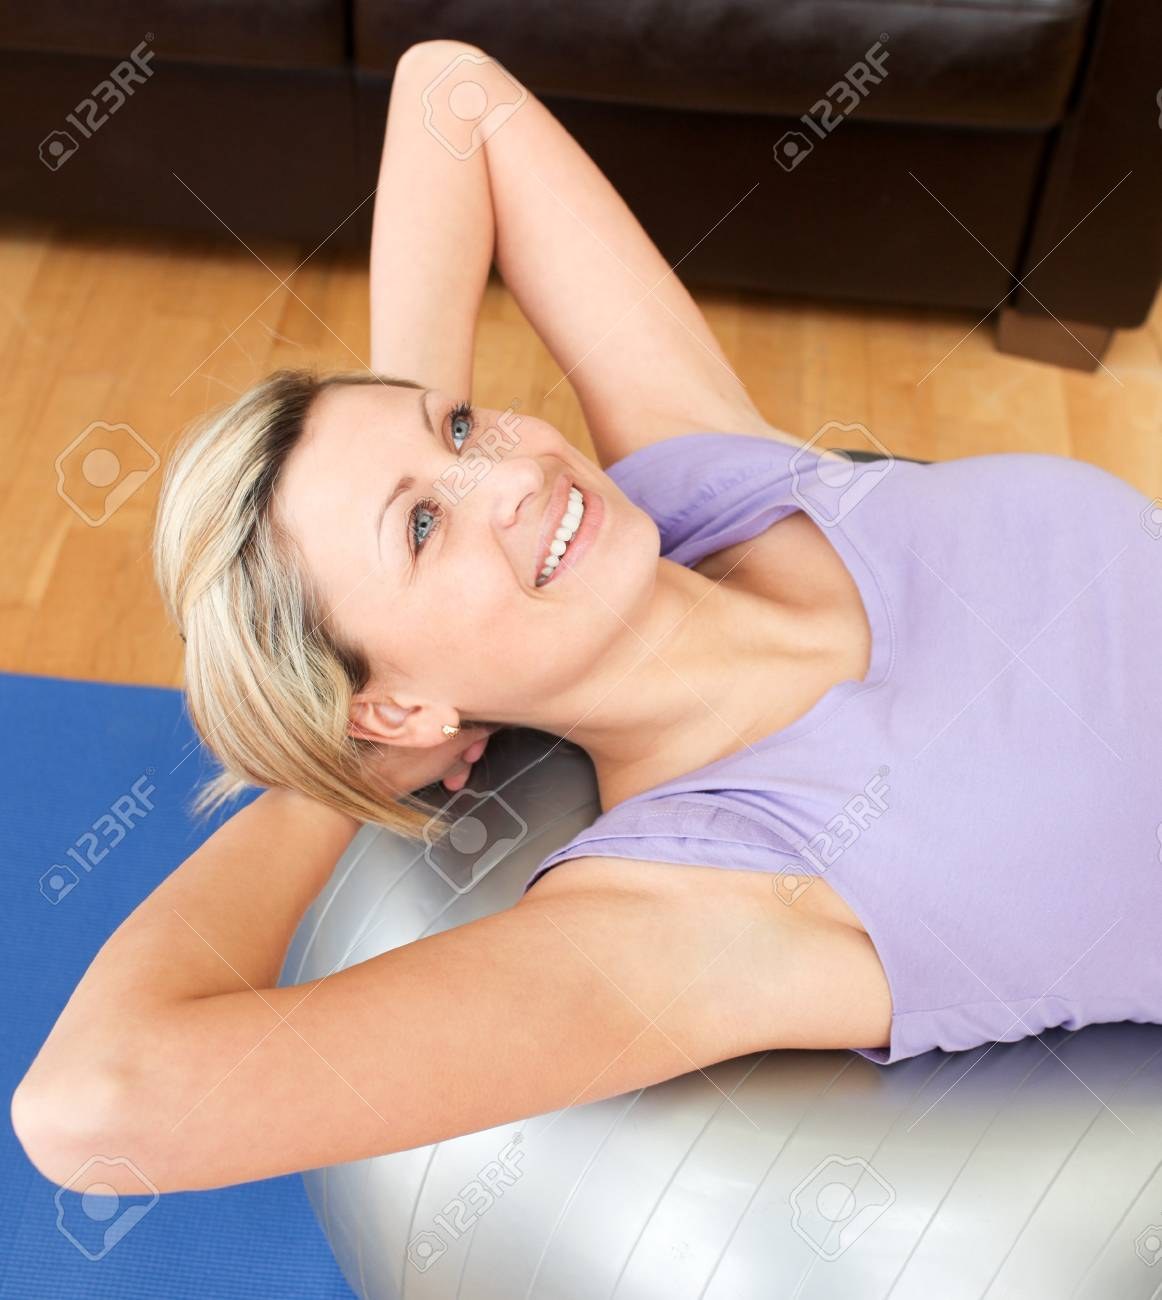 Smiling woman doing exercice Stock Photo - 10249079